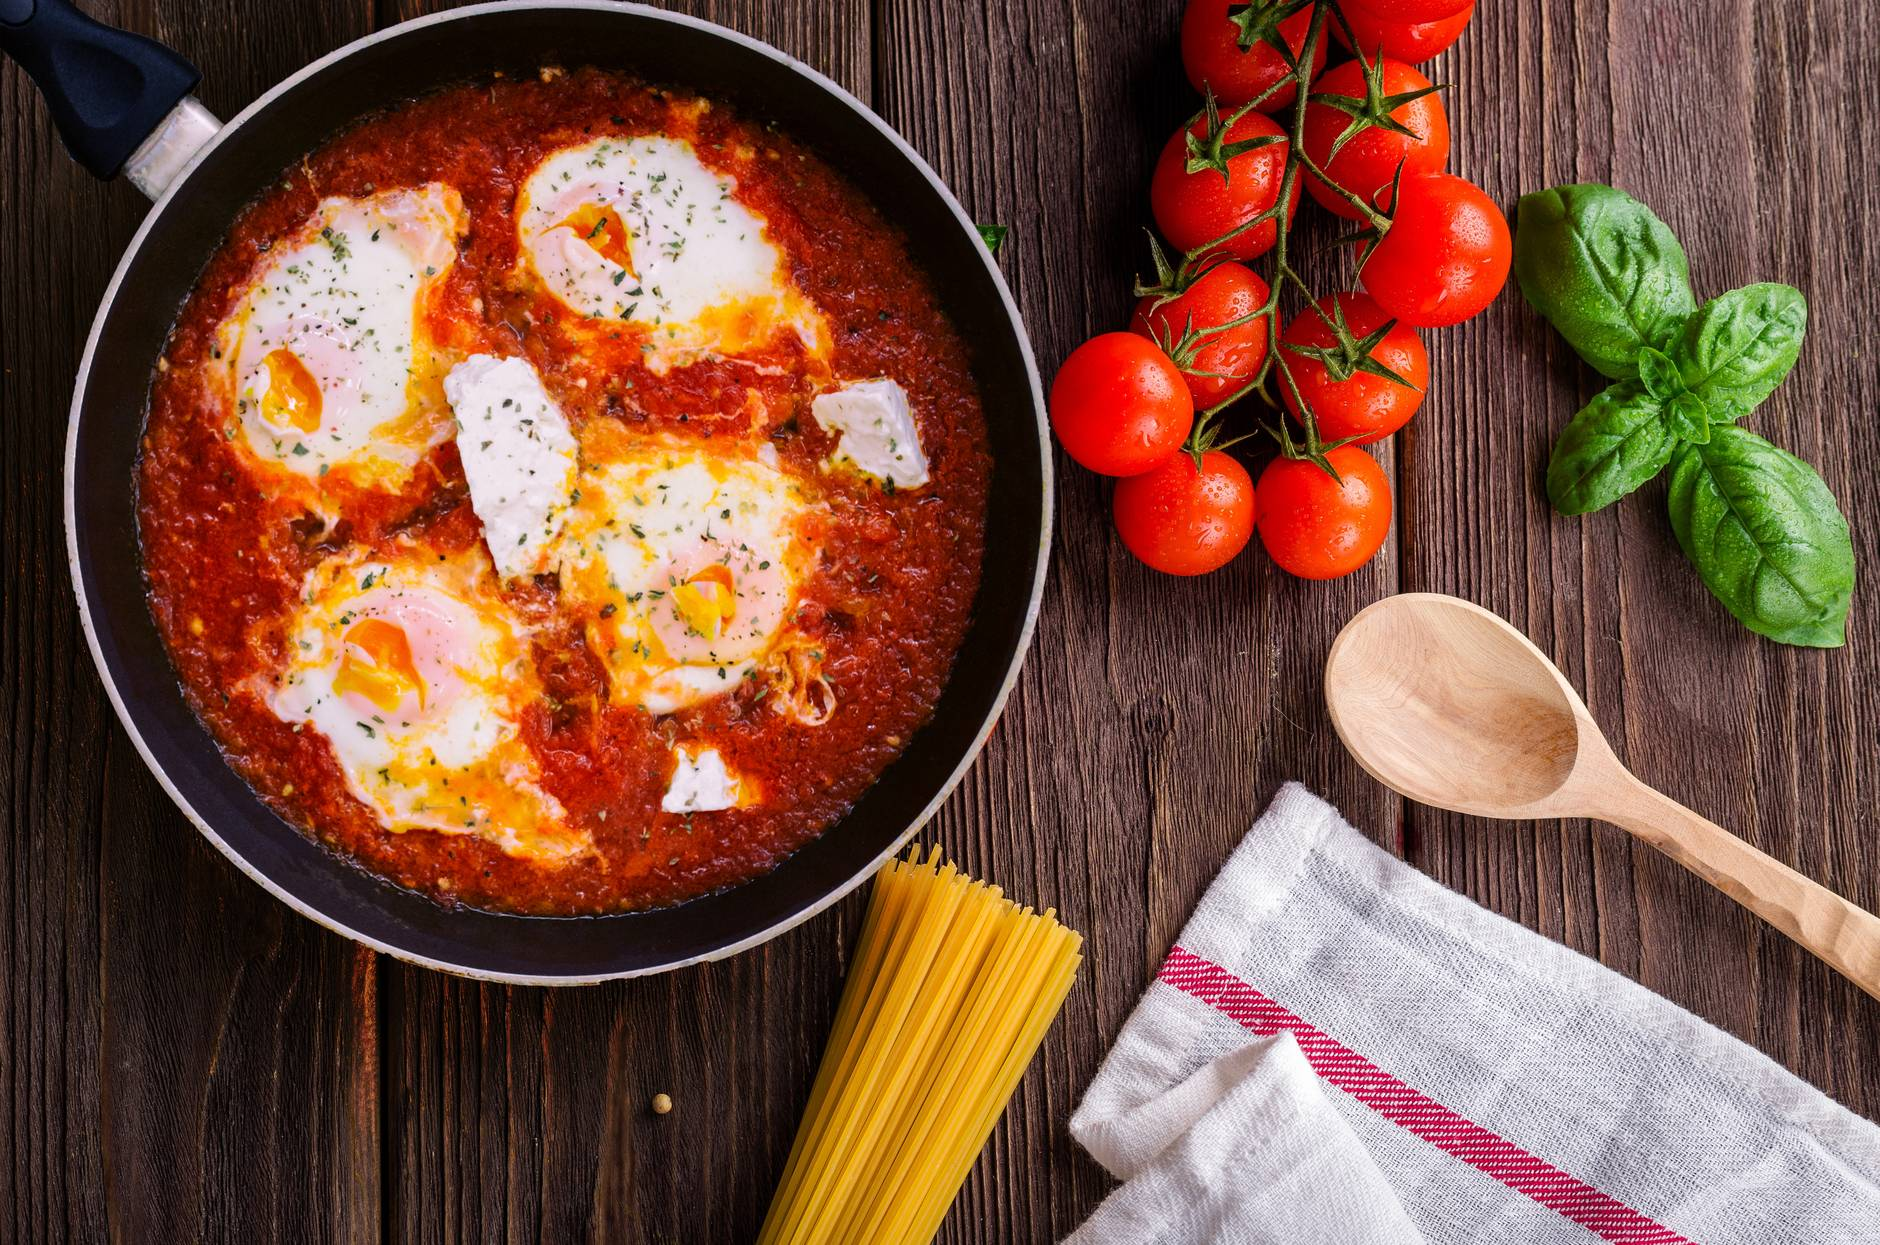 black frying pan with spaghetti sauce near brown wooden ladle and ripe tomatoes